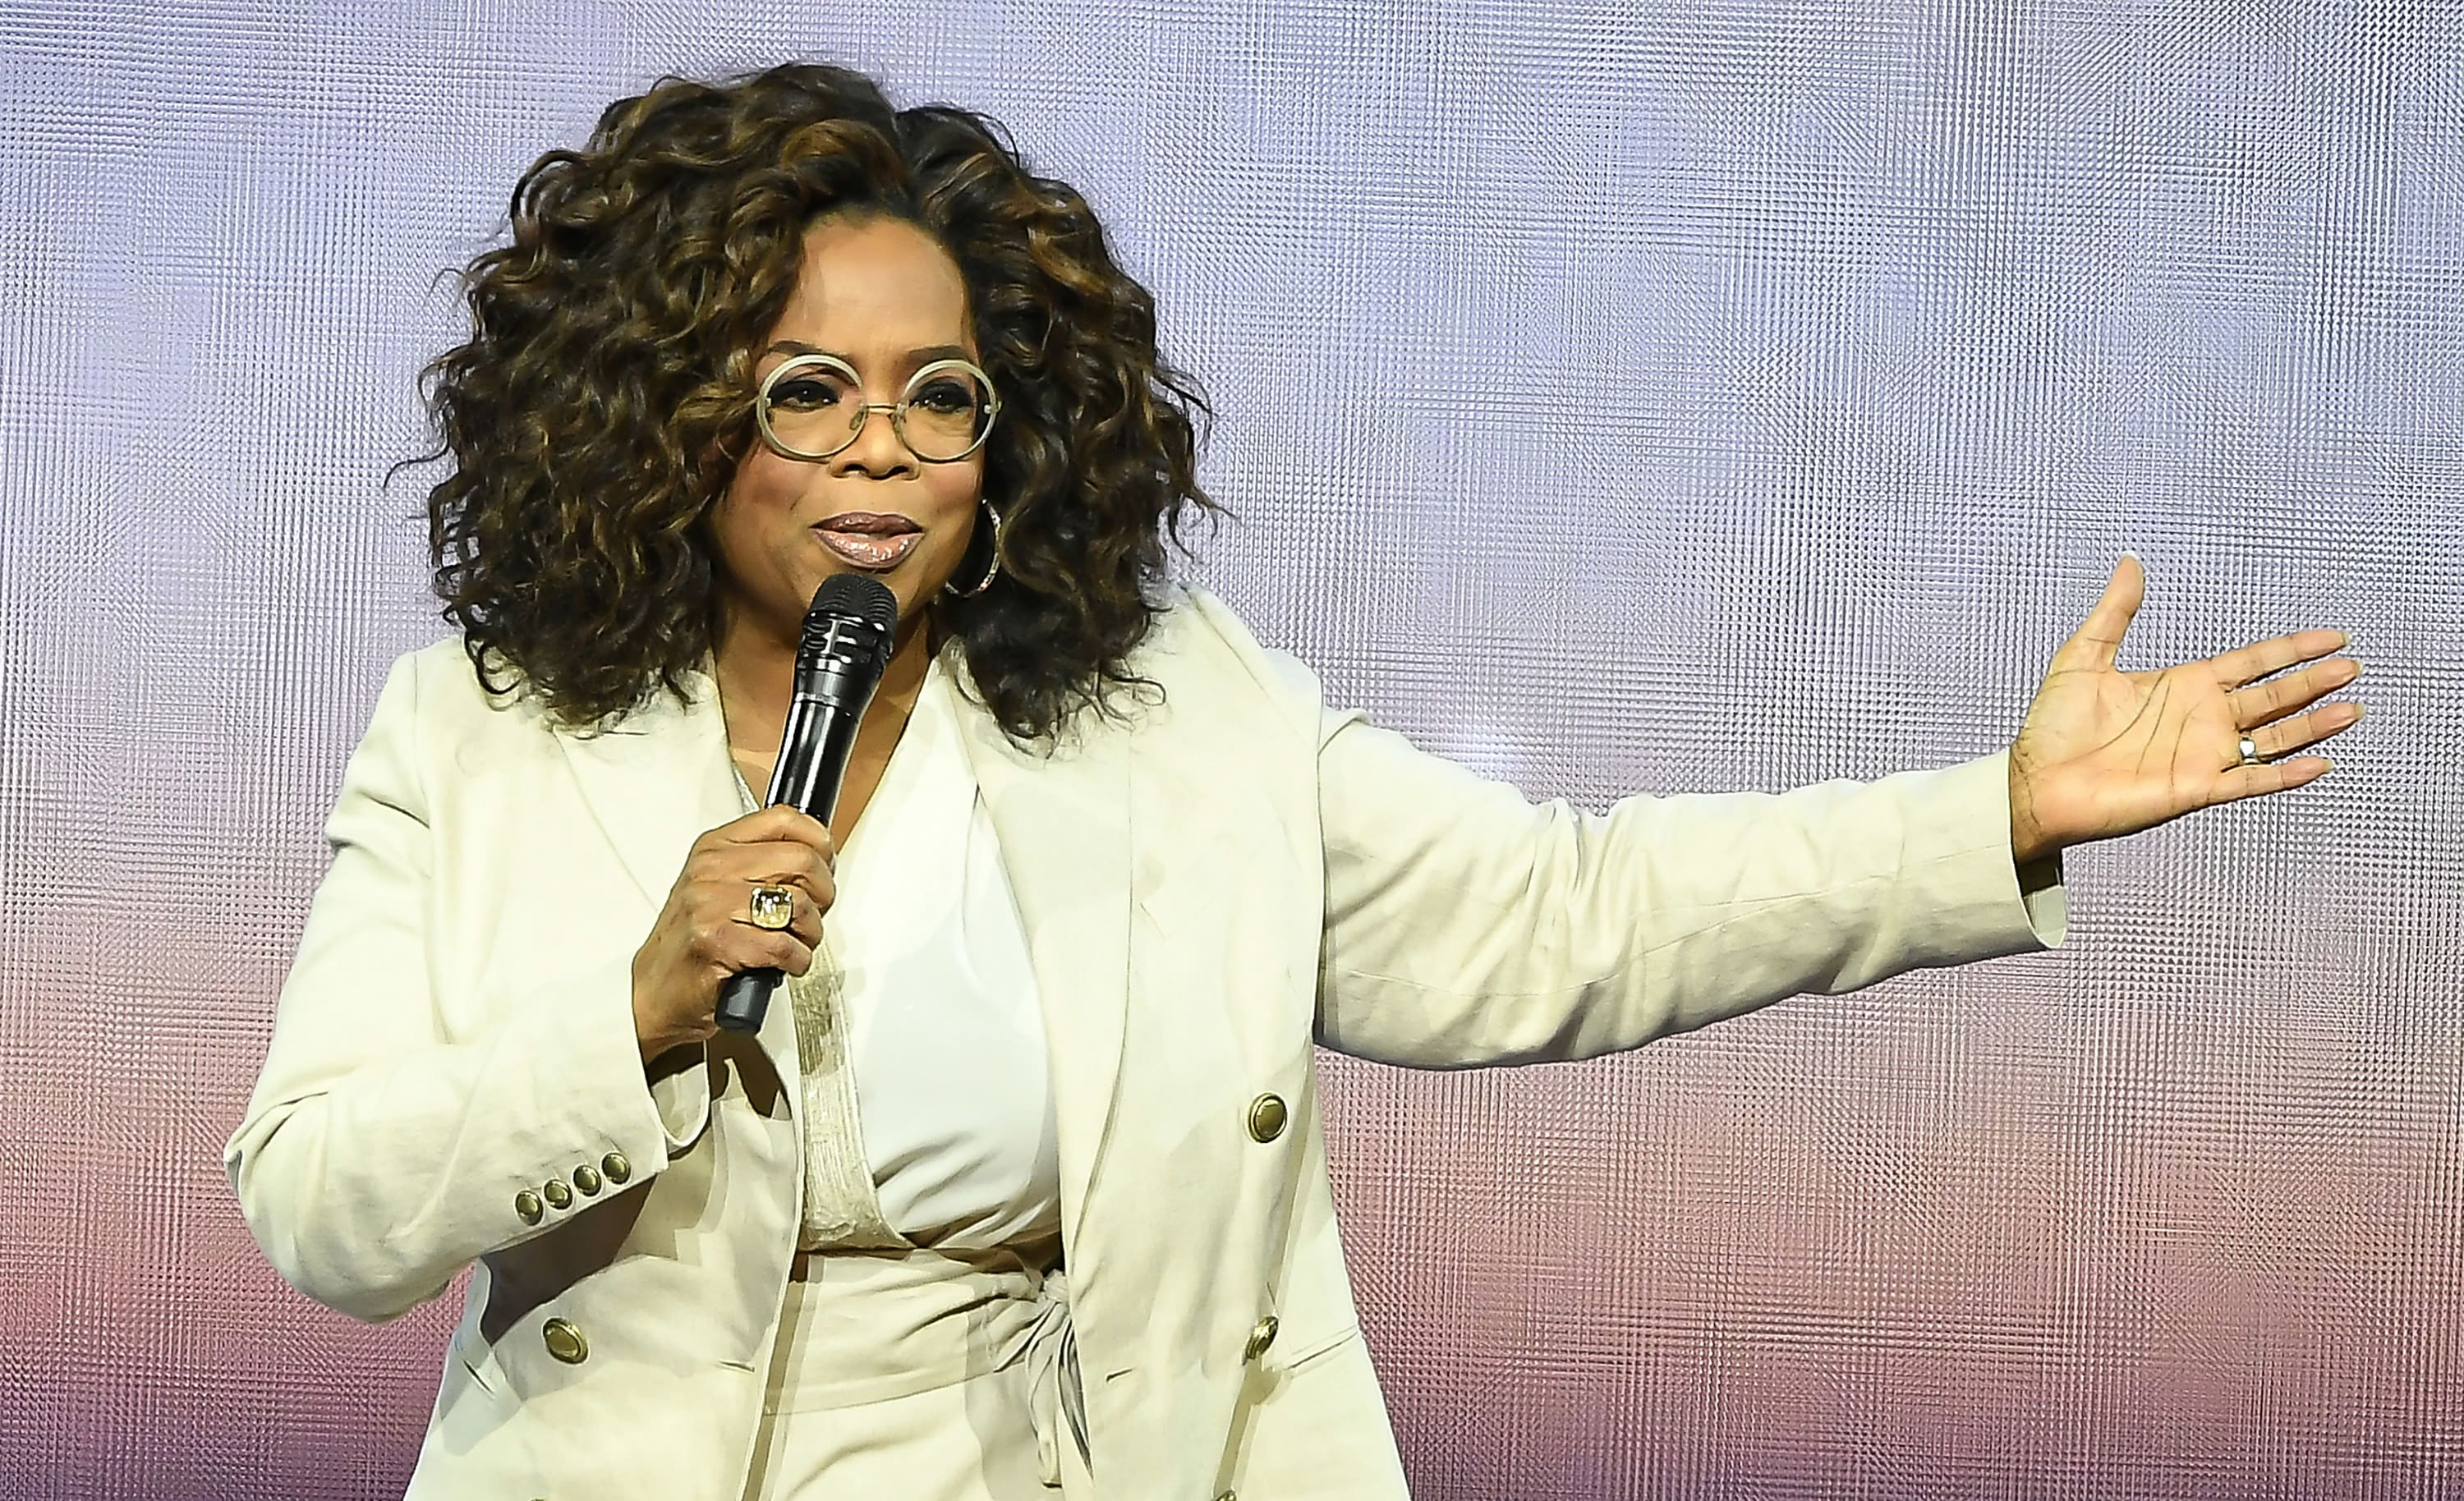 Oprah with her arm out as she talks into a microphone